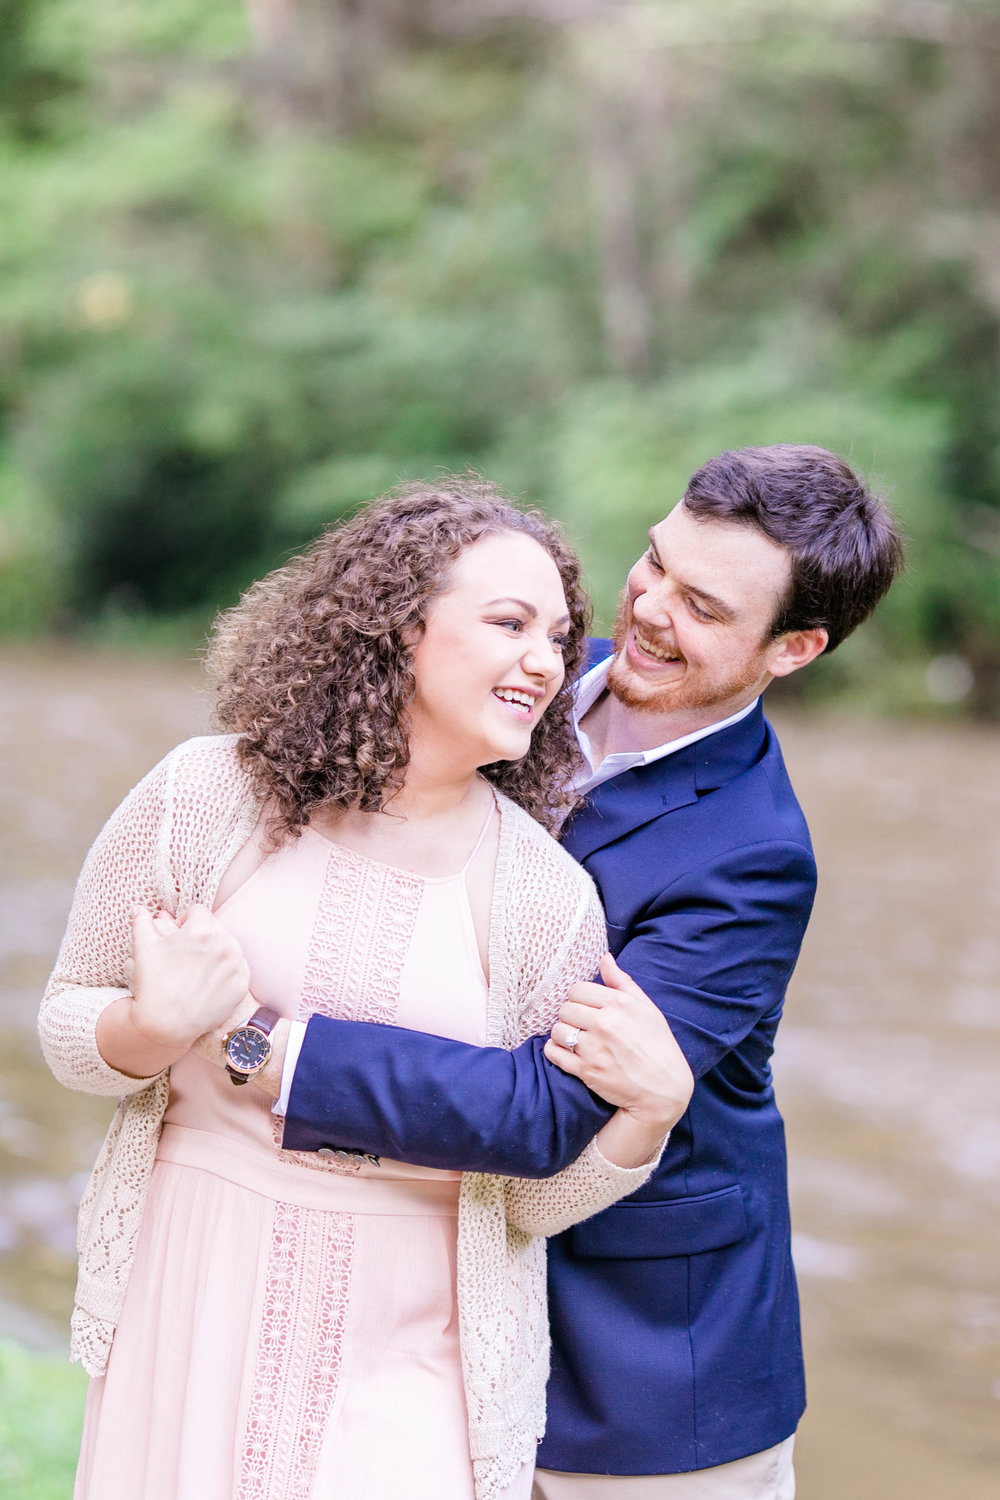 East Tennessee engagement session, wedding photographer, portrait photography, bride and groom, Doe River Gorge, wedding venue, Tri Cities wedding photographer, Johnson City, laughing couple